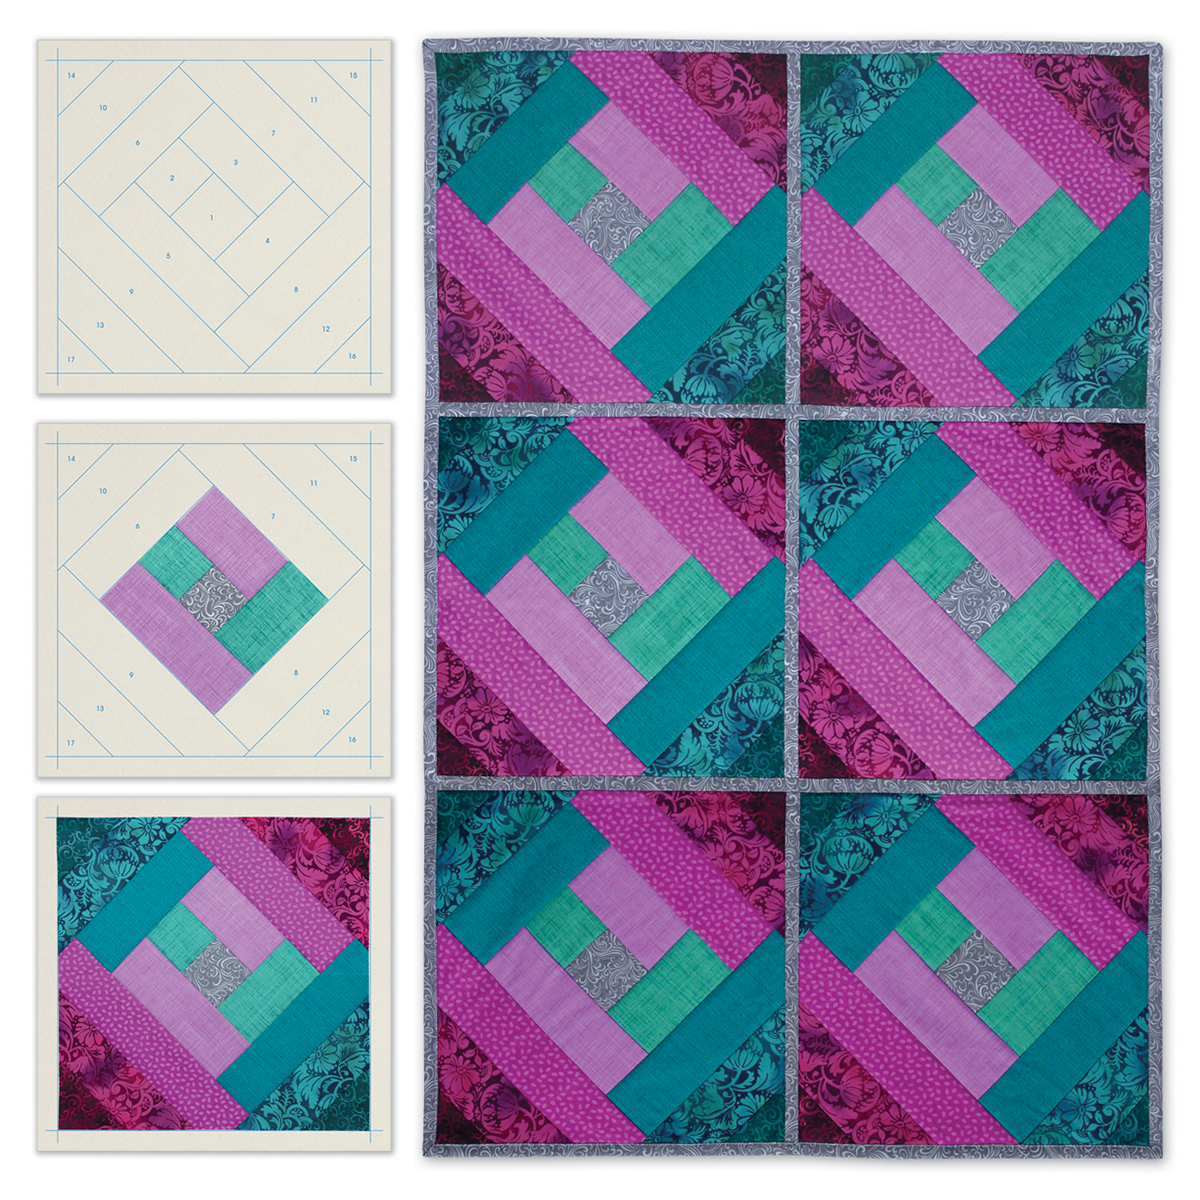 June Tailor Quilt As You Go Printed Quilt Blocks On Batting-London Labyrinth